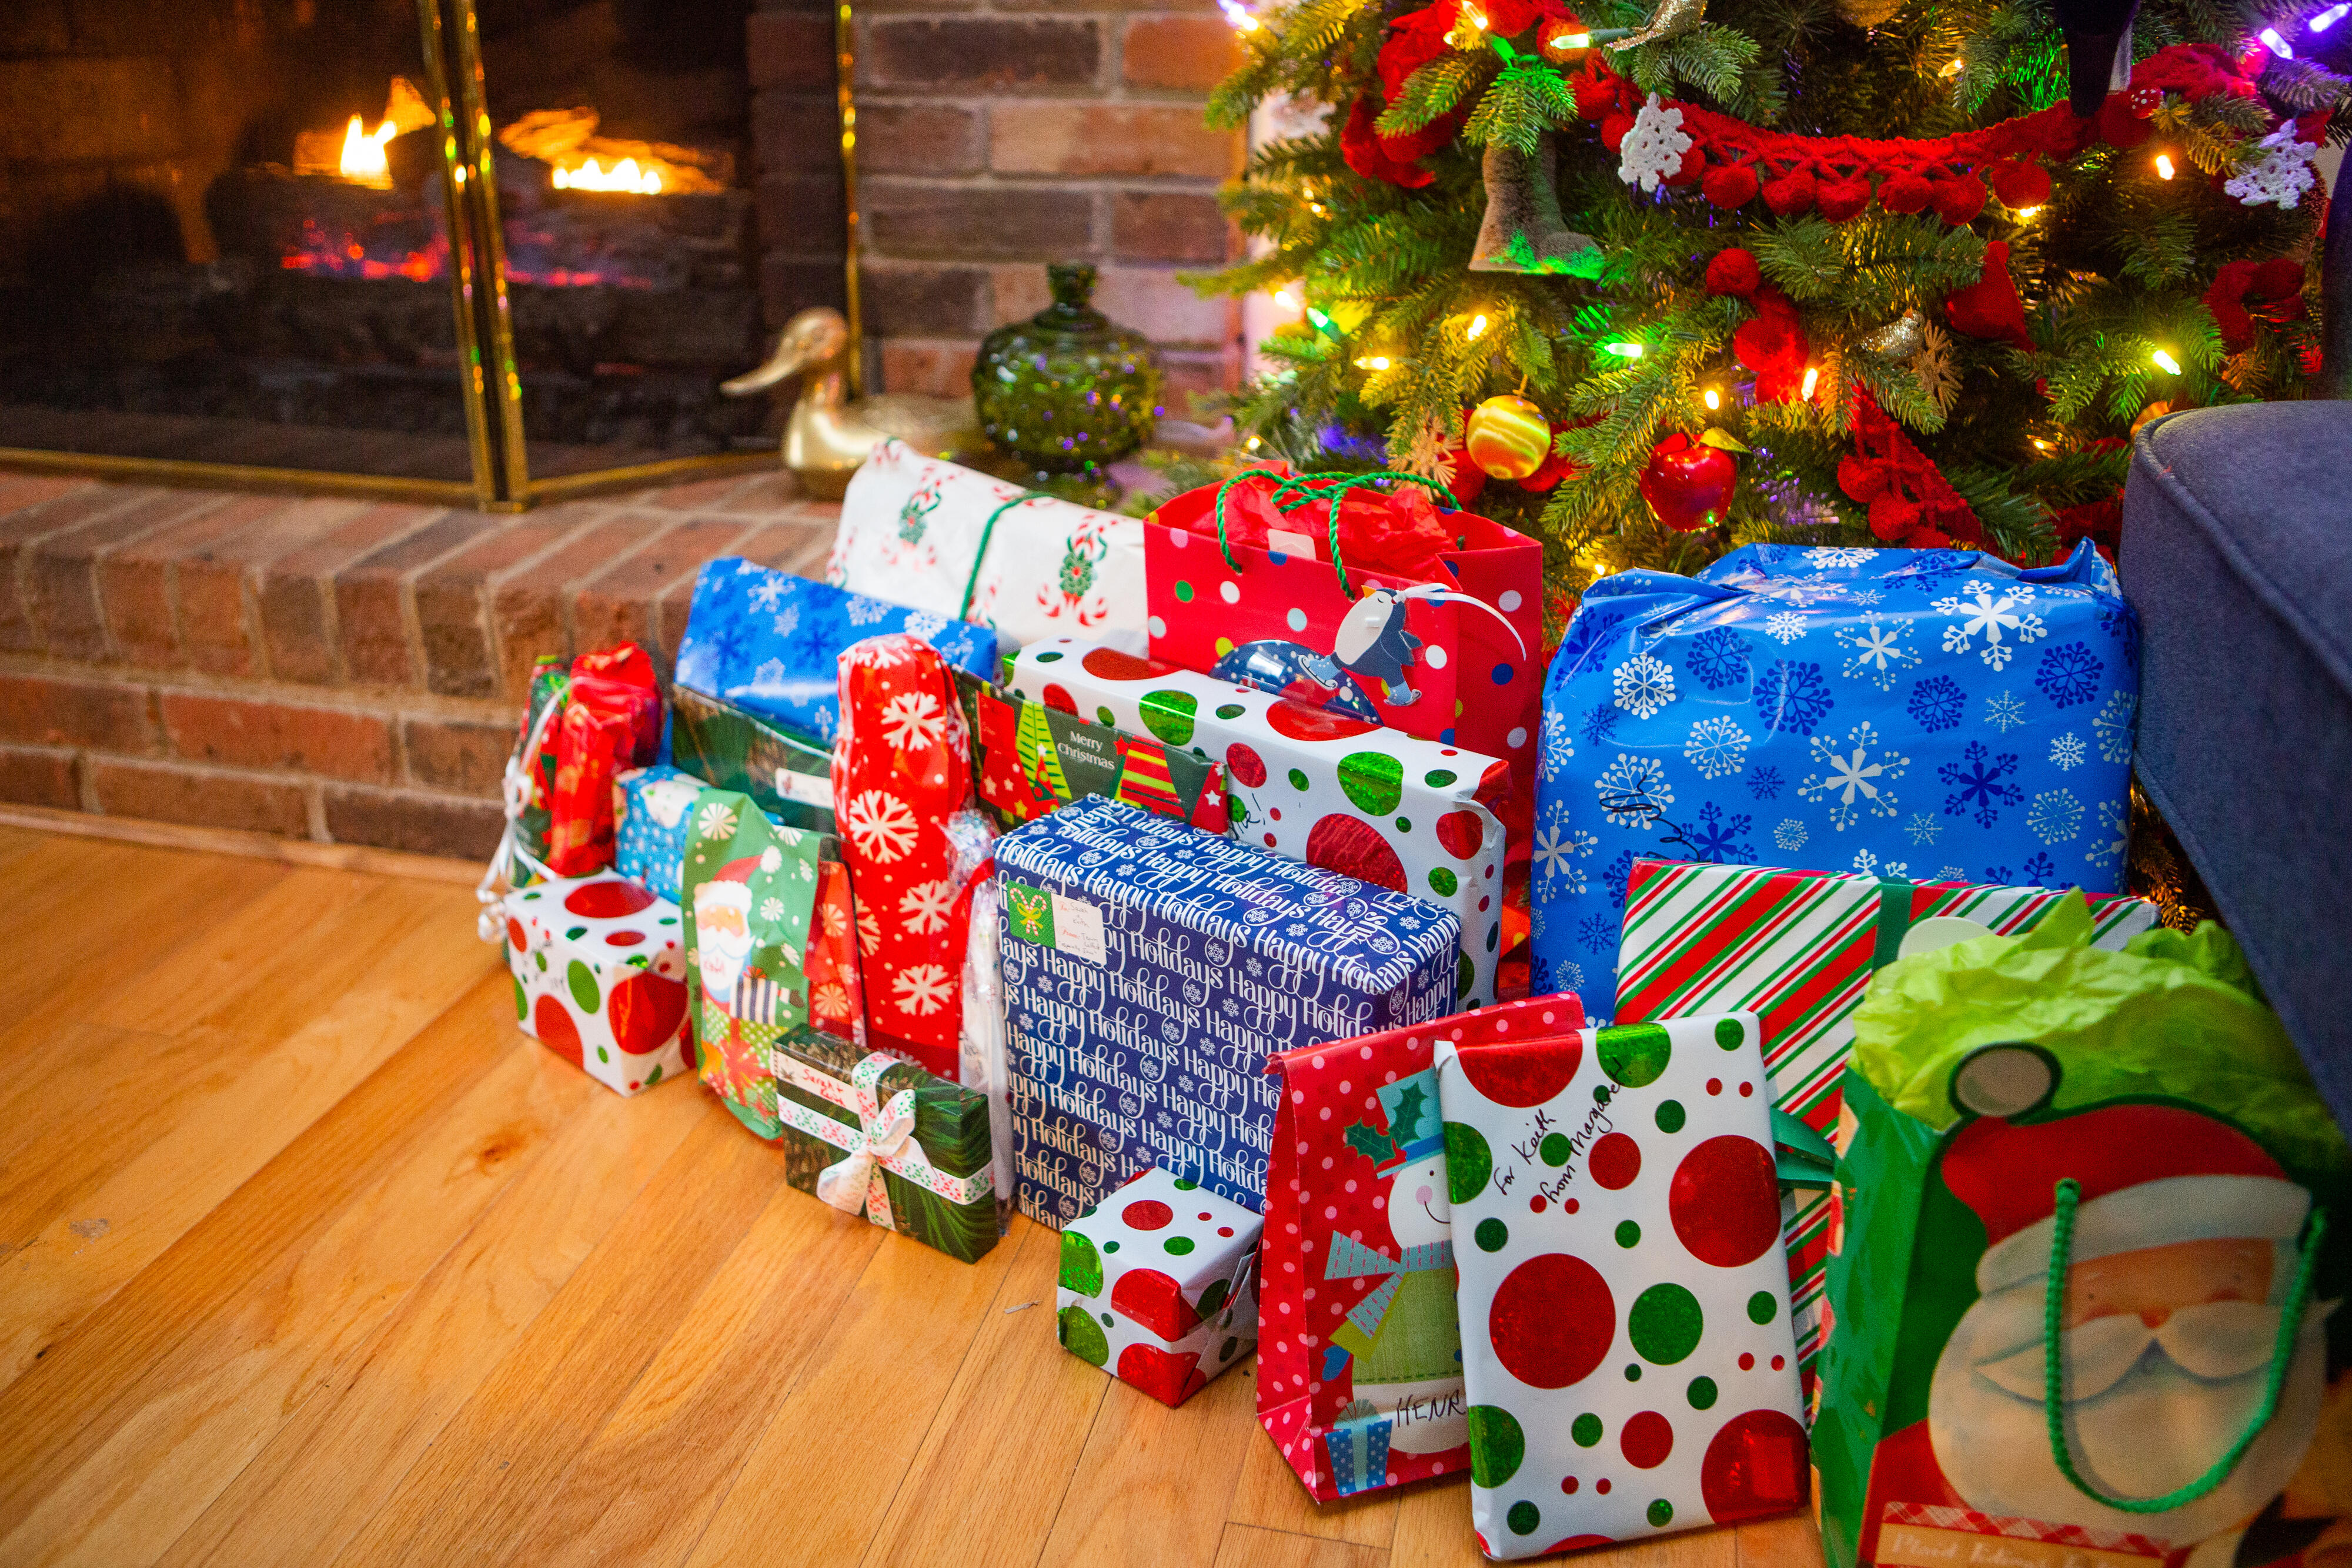 11-christmas-xmas-holidays-2020-intimate-staycation-family-alone-couple-empty-stocking-presents-gifts-tree